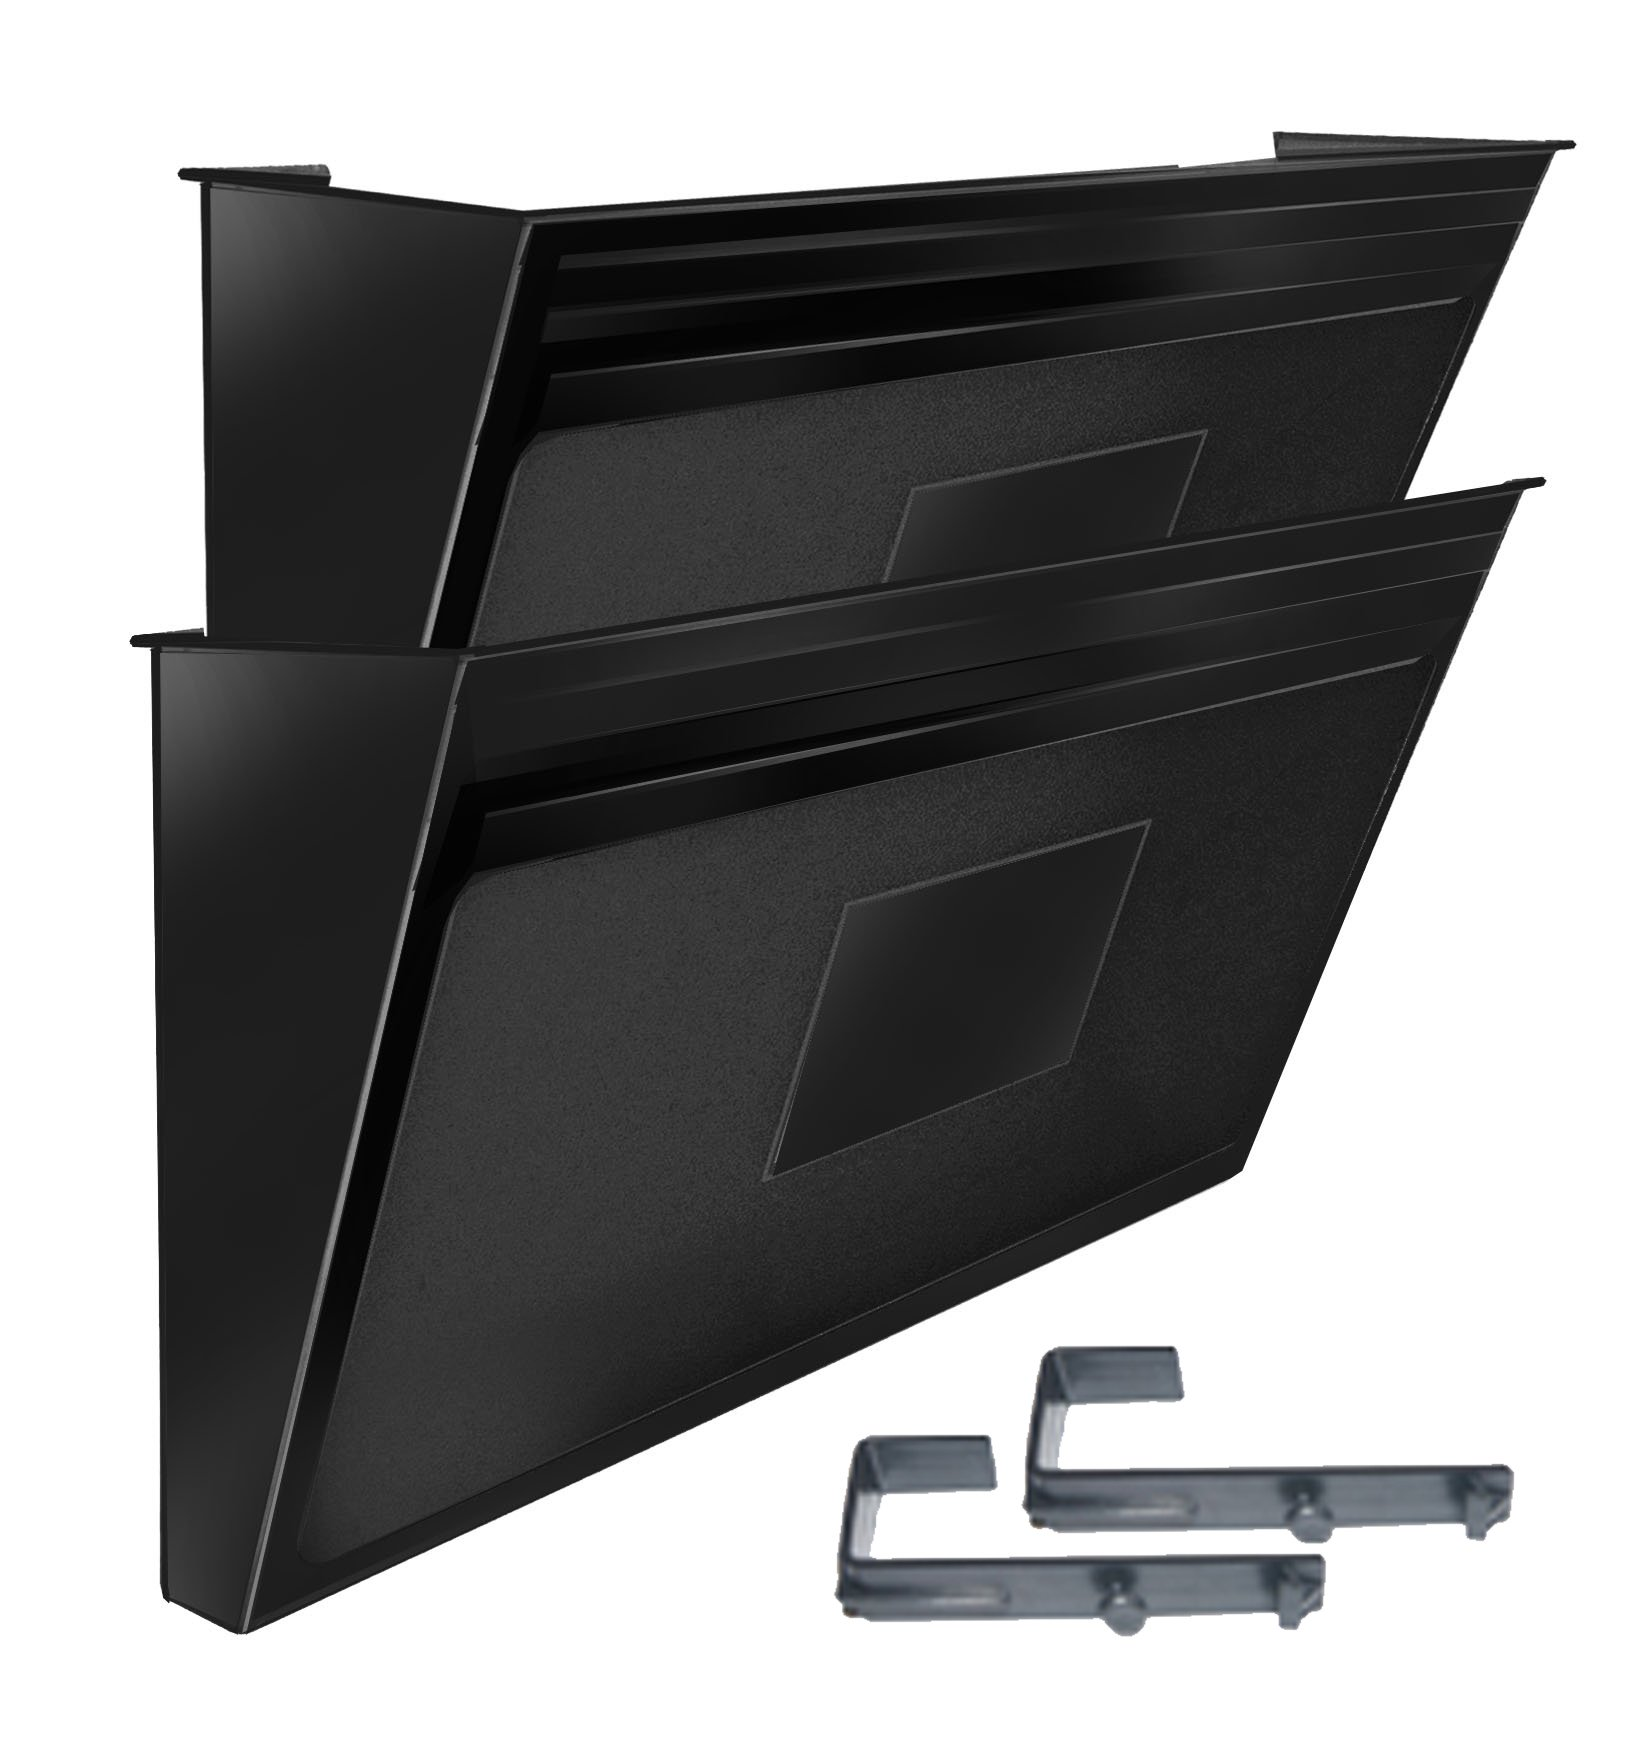 Acrimet Wall-mounted Modular File Holder (2 - Pack) (Black Color)